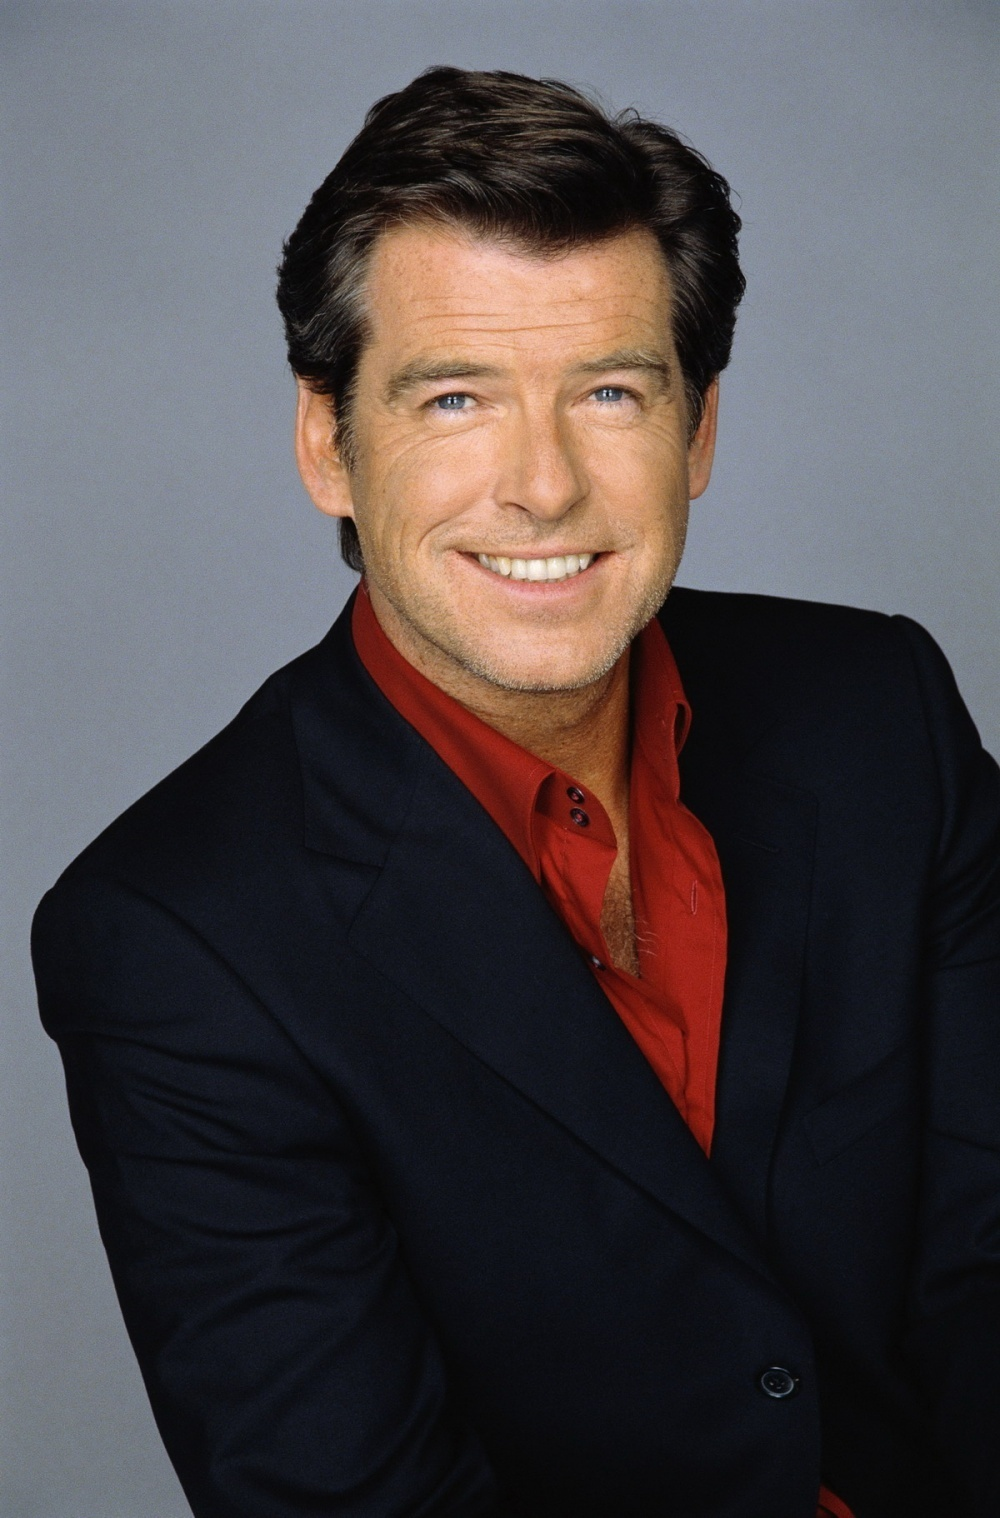 Pierce-Brosnan-pierce-brosnan-9651365-1000-1518 12 of The Most Attractive Actors Over 60